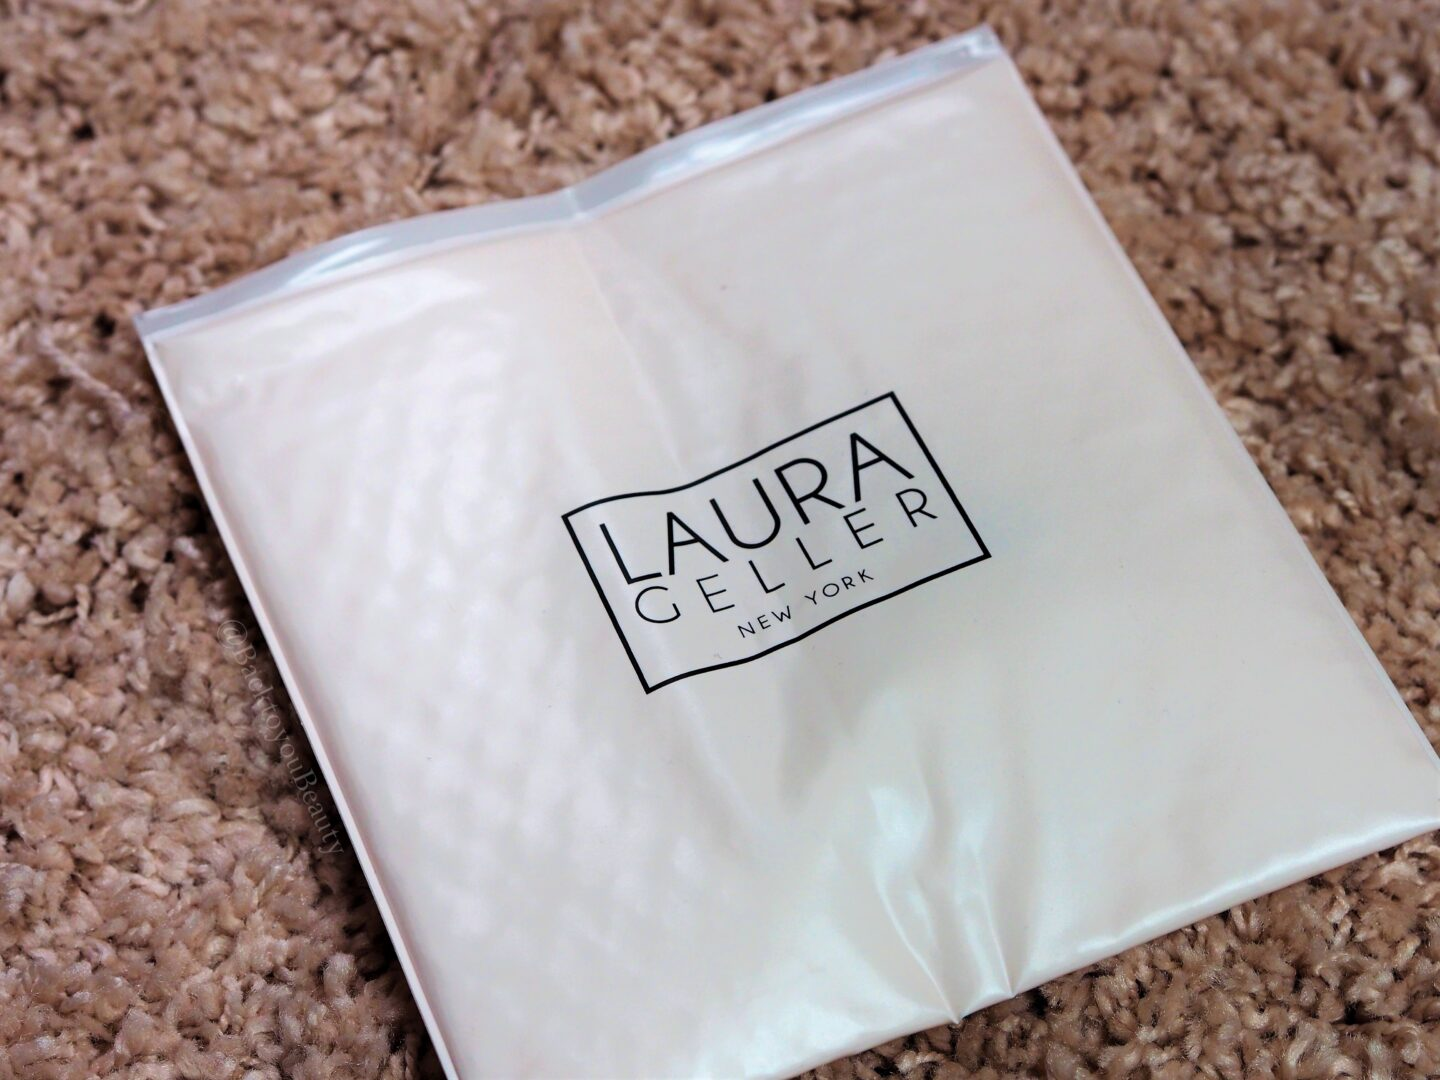 Laura Geller cosmetic bag